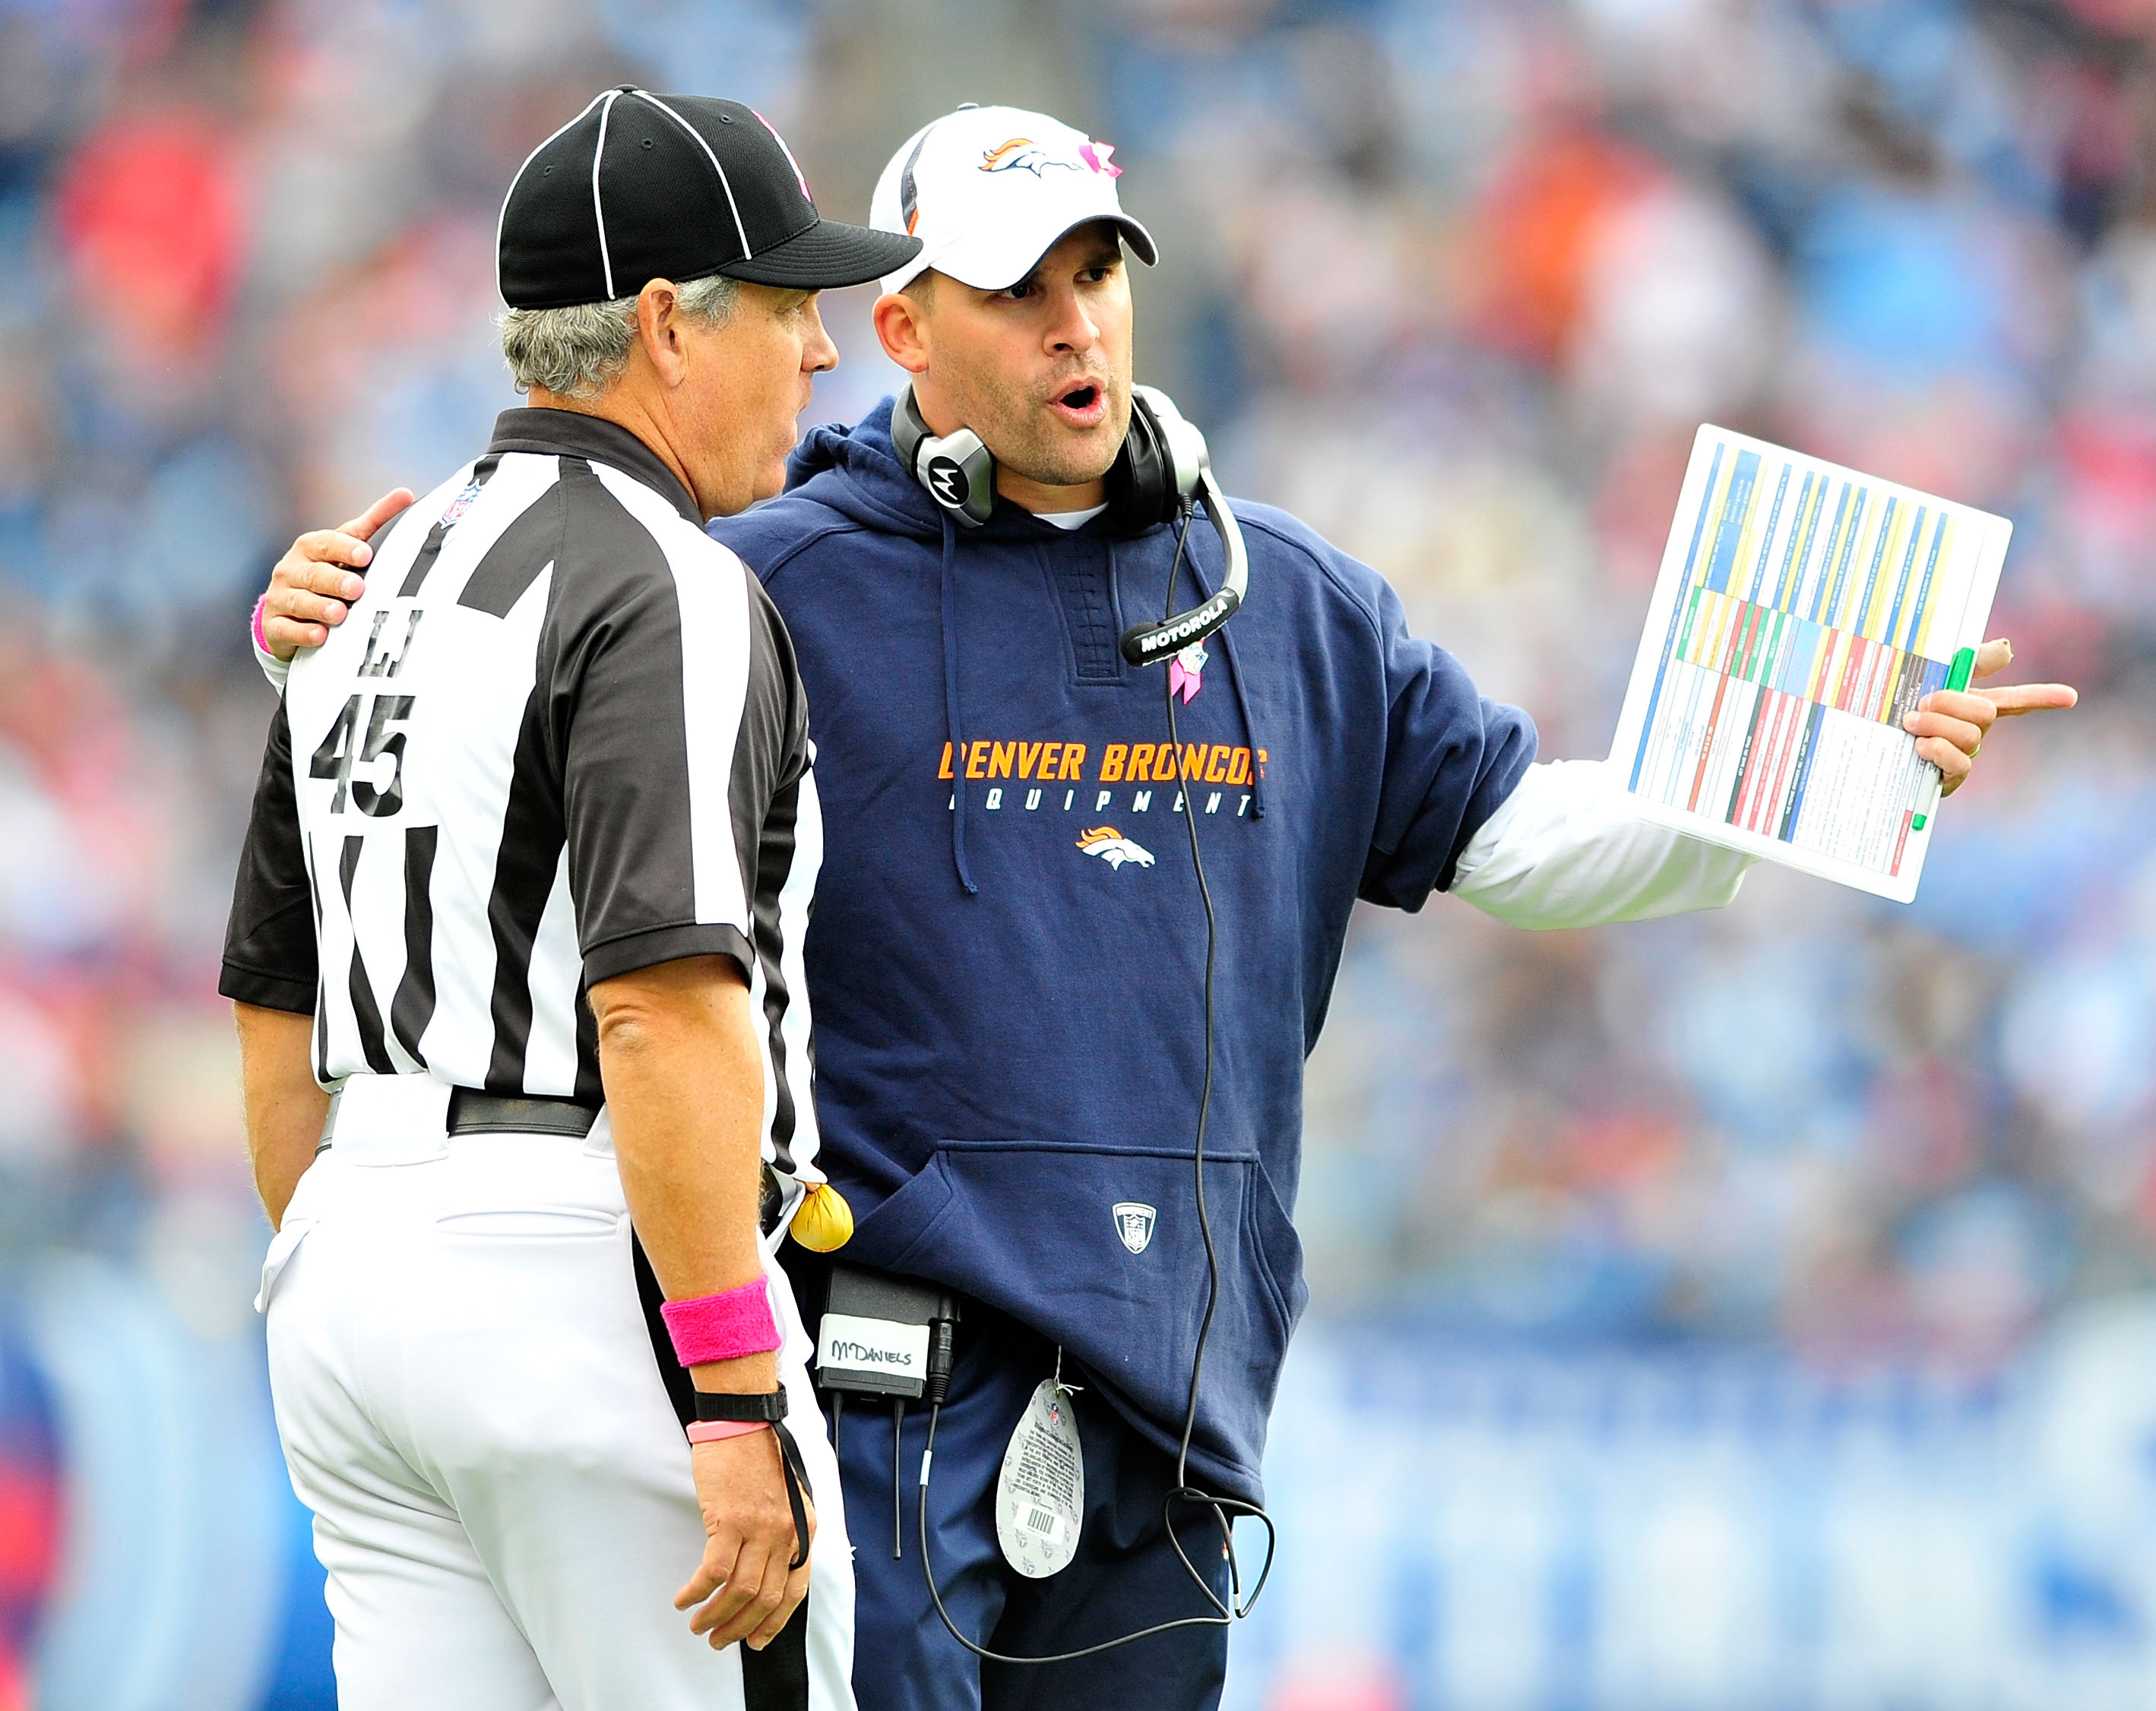 NASHVILLE, TN - OCTOBER 03:  Coach Josh McDaniels of the Denver Broncos confers with an official during a game against the Tennessee Titans  at LP Field on October 3, 2010 in Nashville, Tennessee. Denver won 26-20.  (Photo by Grant Halverson/Getty Images)